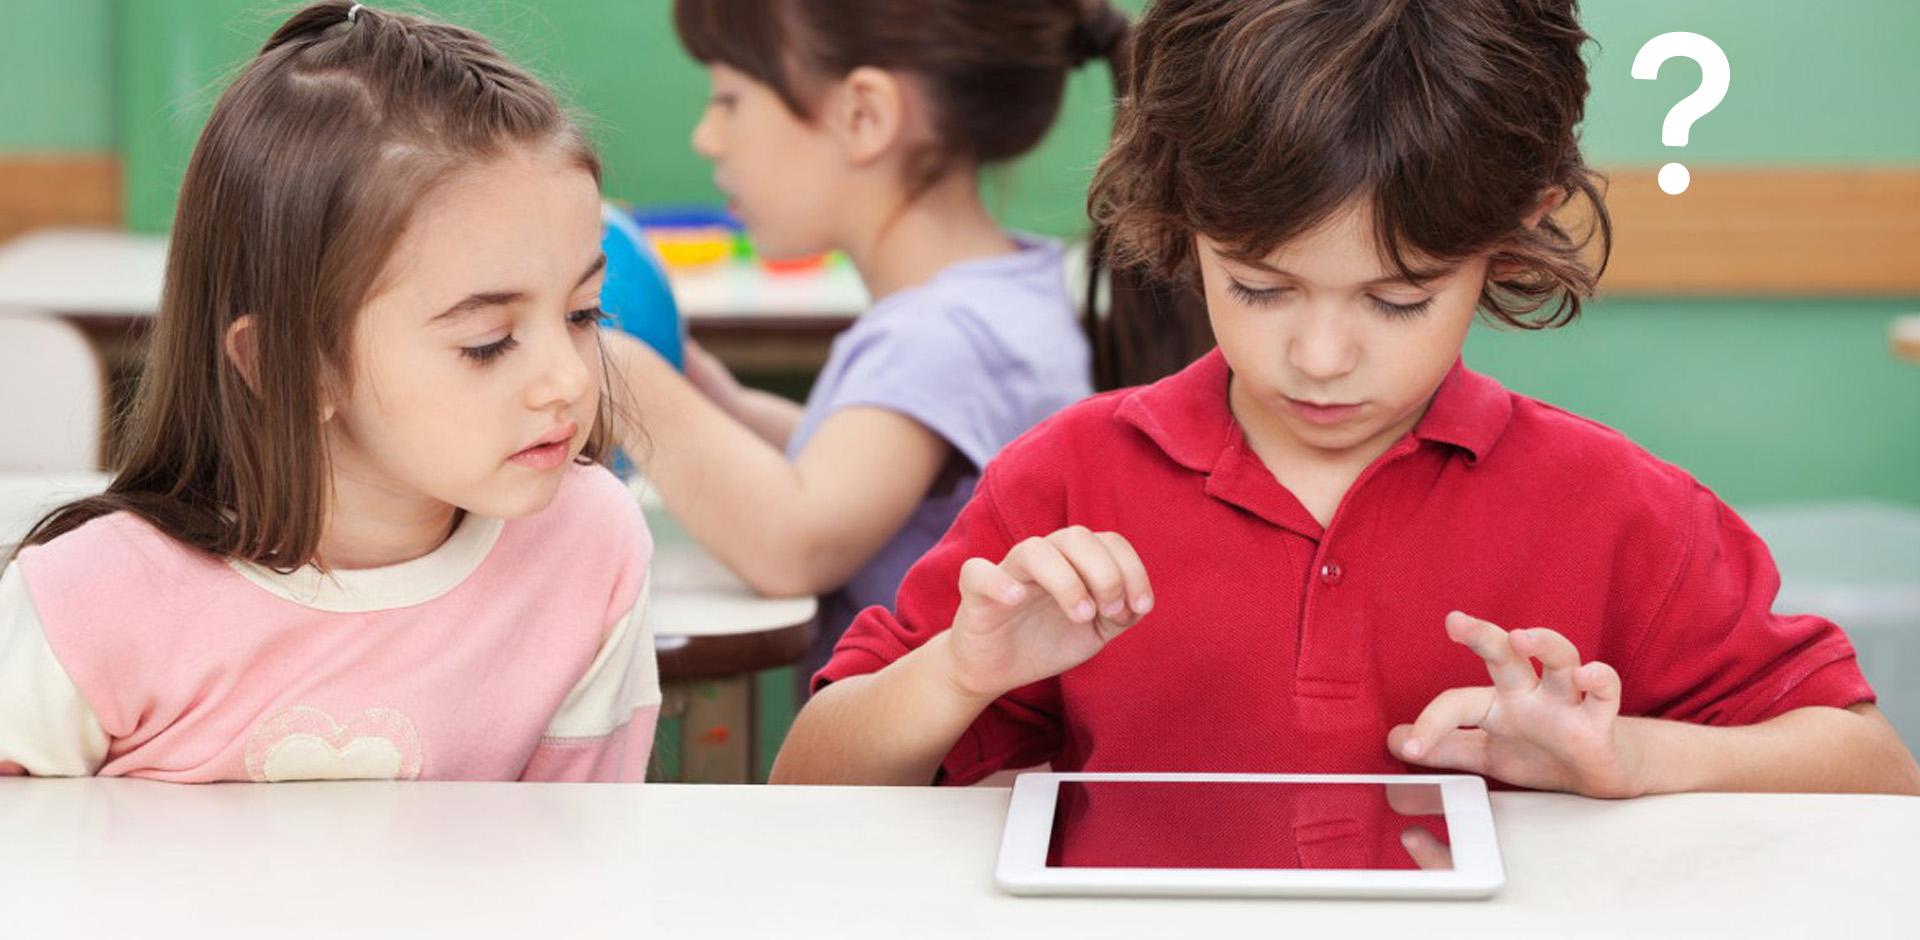 Can An Educational App Help Your Child To Learn In A Better Way Than Before?